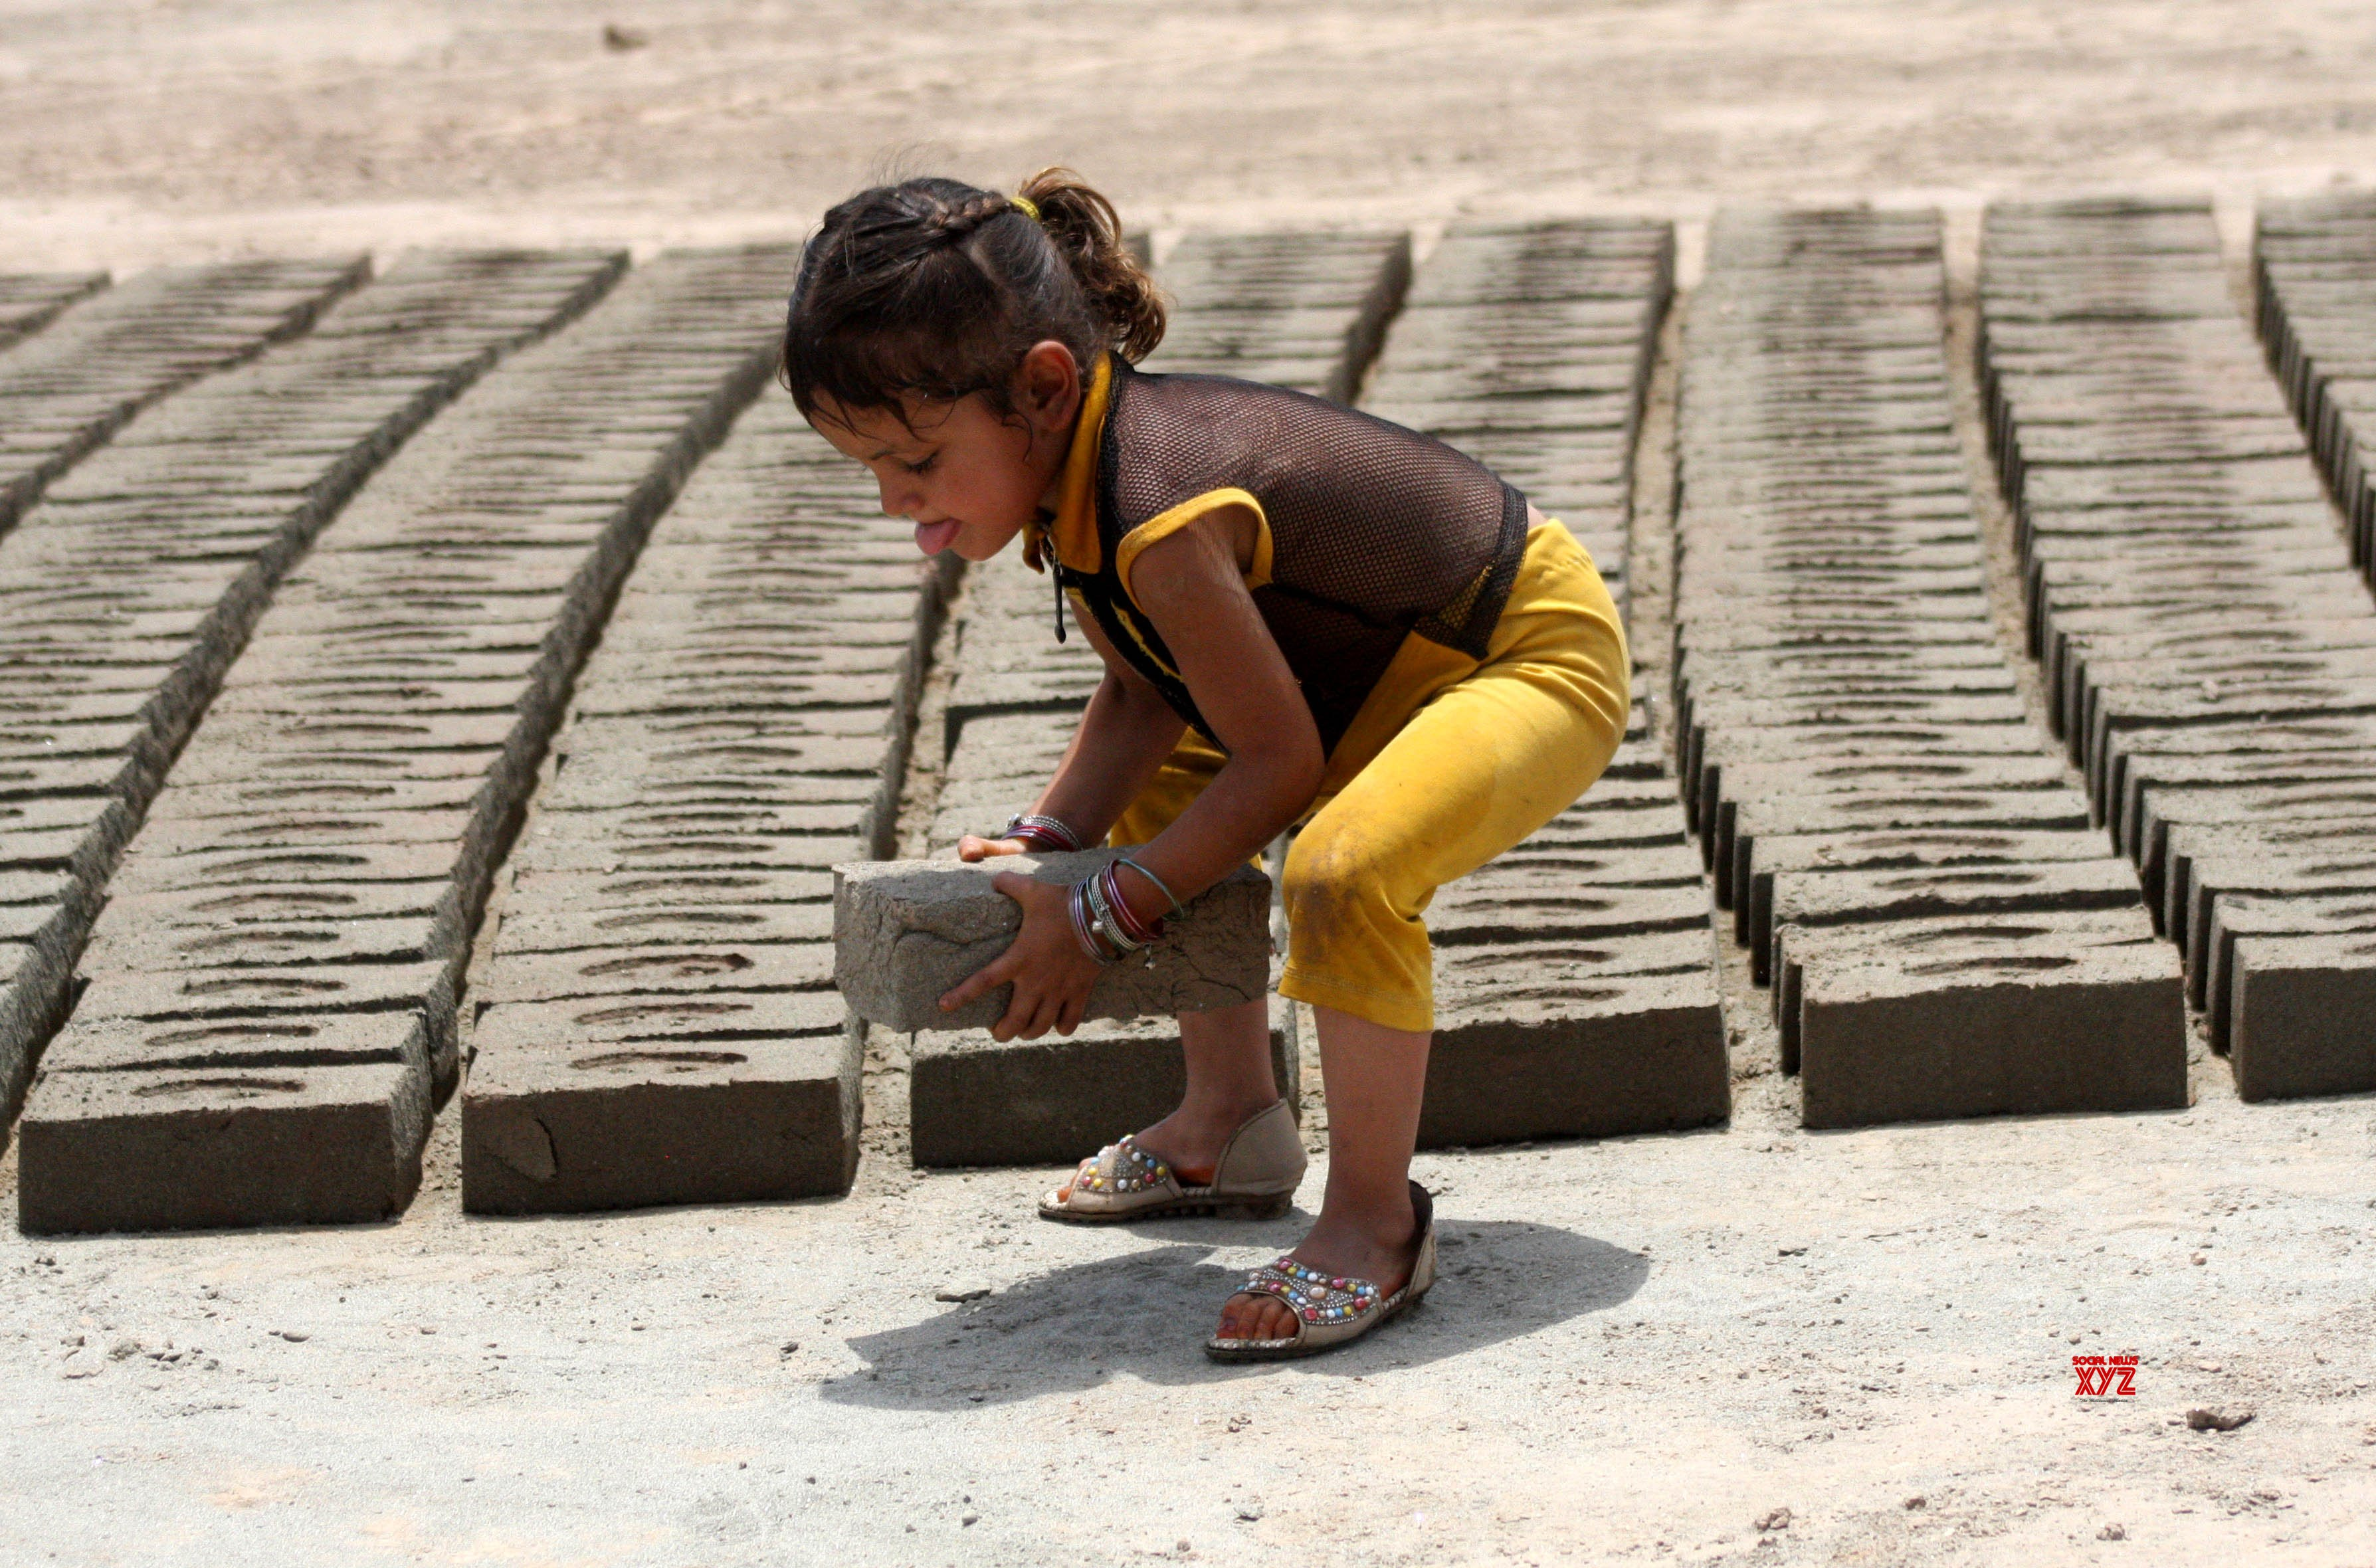 PAKISTAN - PESHAWAR - WORLD DAY AGAINST CHILD LABOR #Gallery